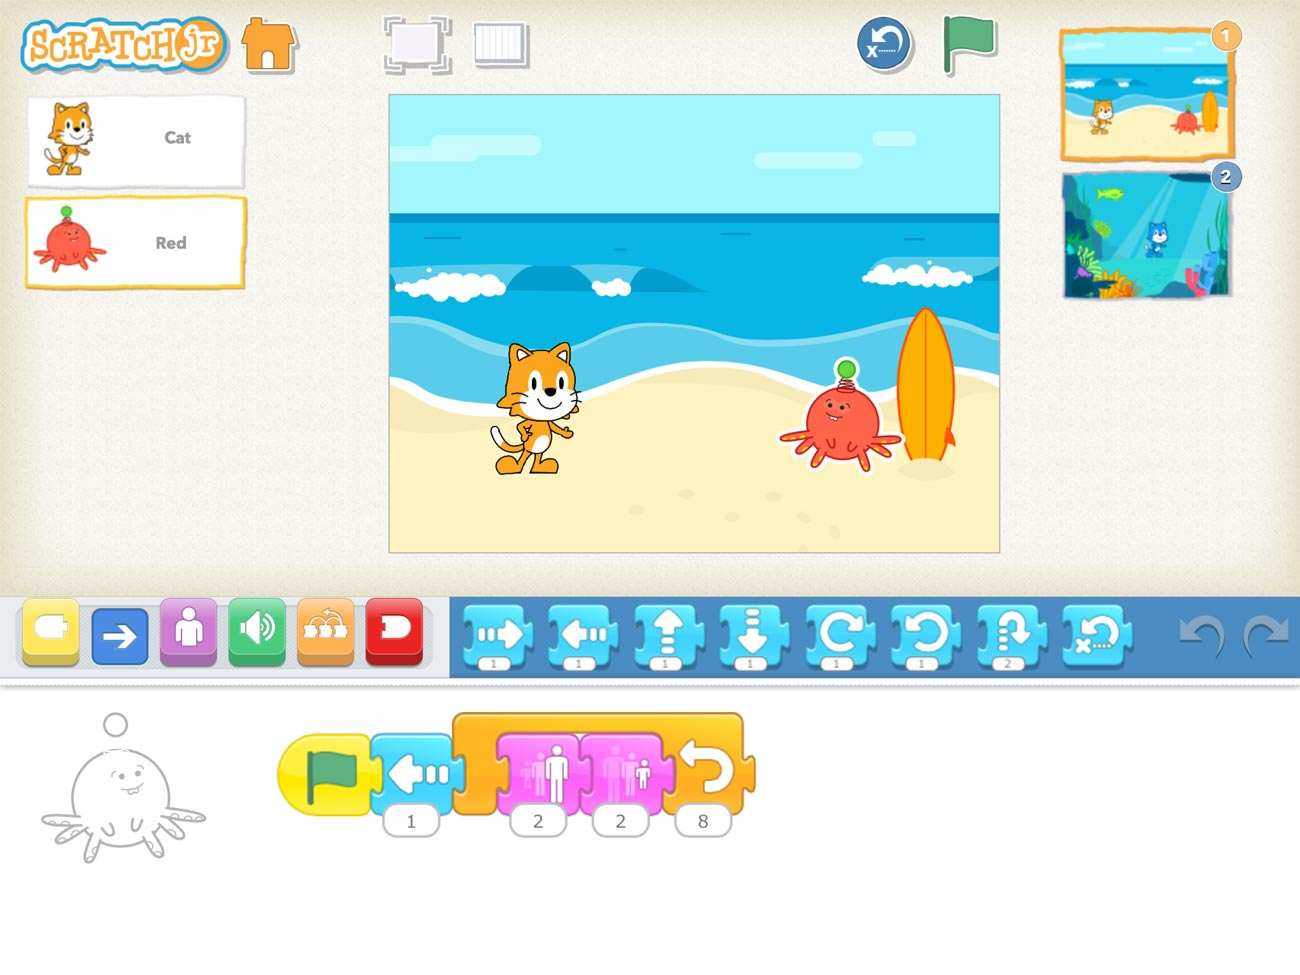 With ScratchJr, you create computer programs by dragging coloured blocks. In this screenshot, the red octopus character's program is shown at the bottom of the screen.